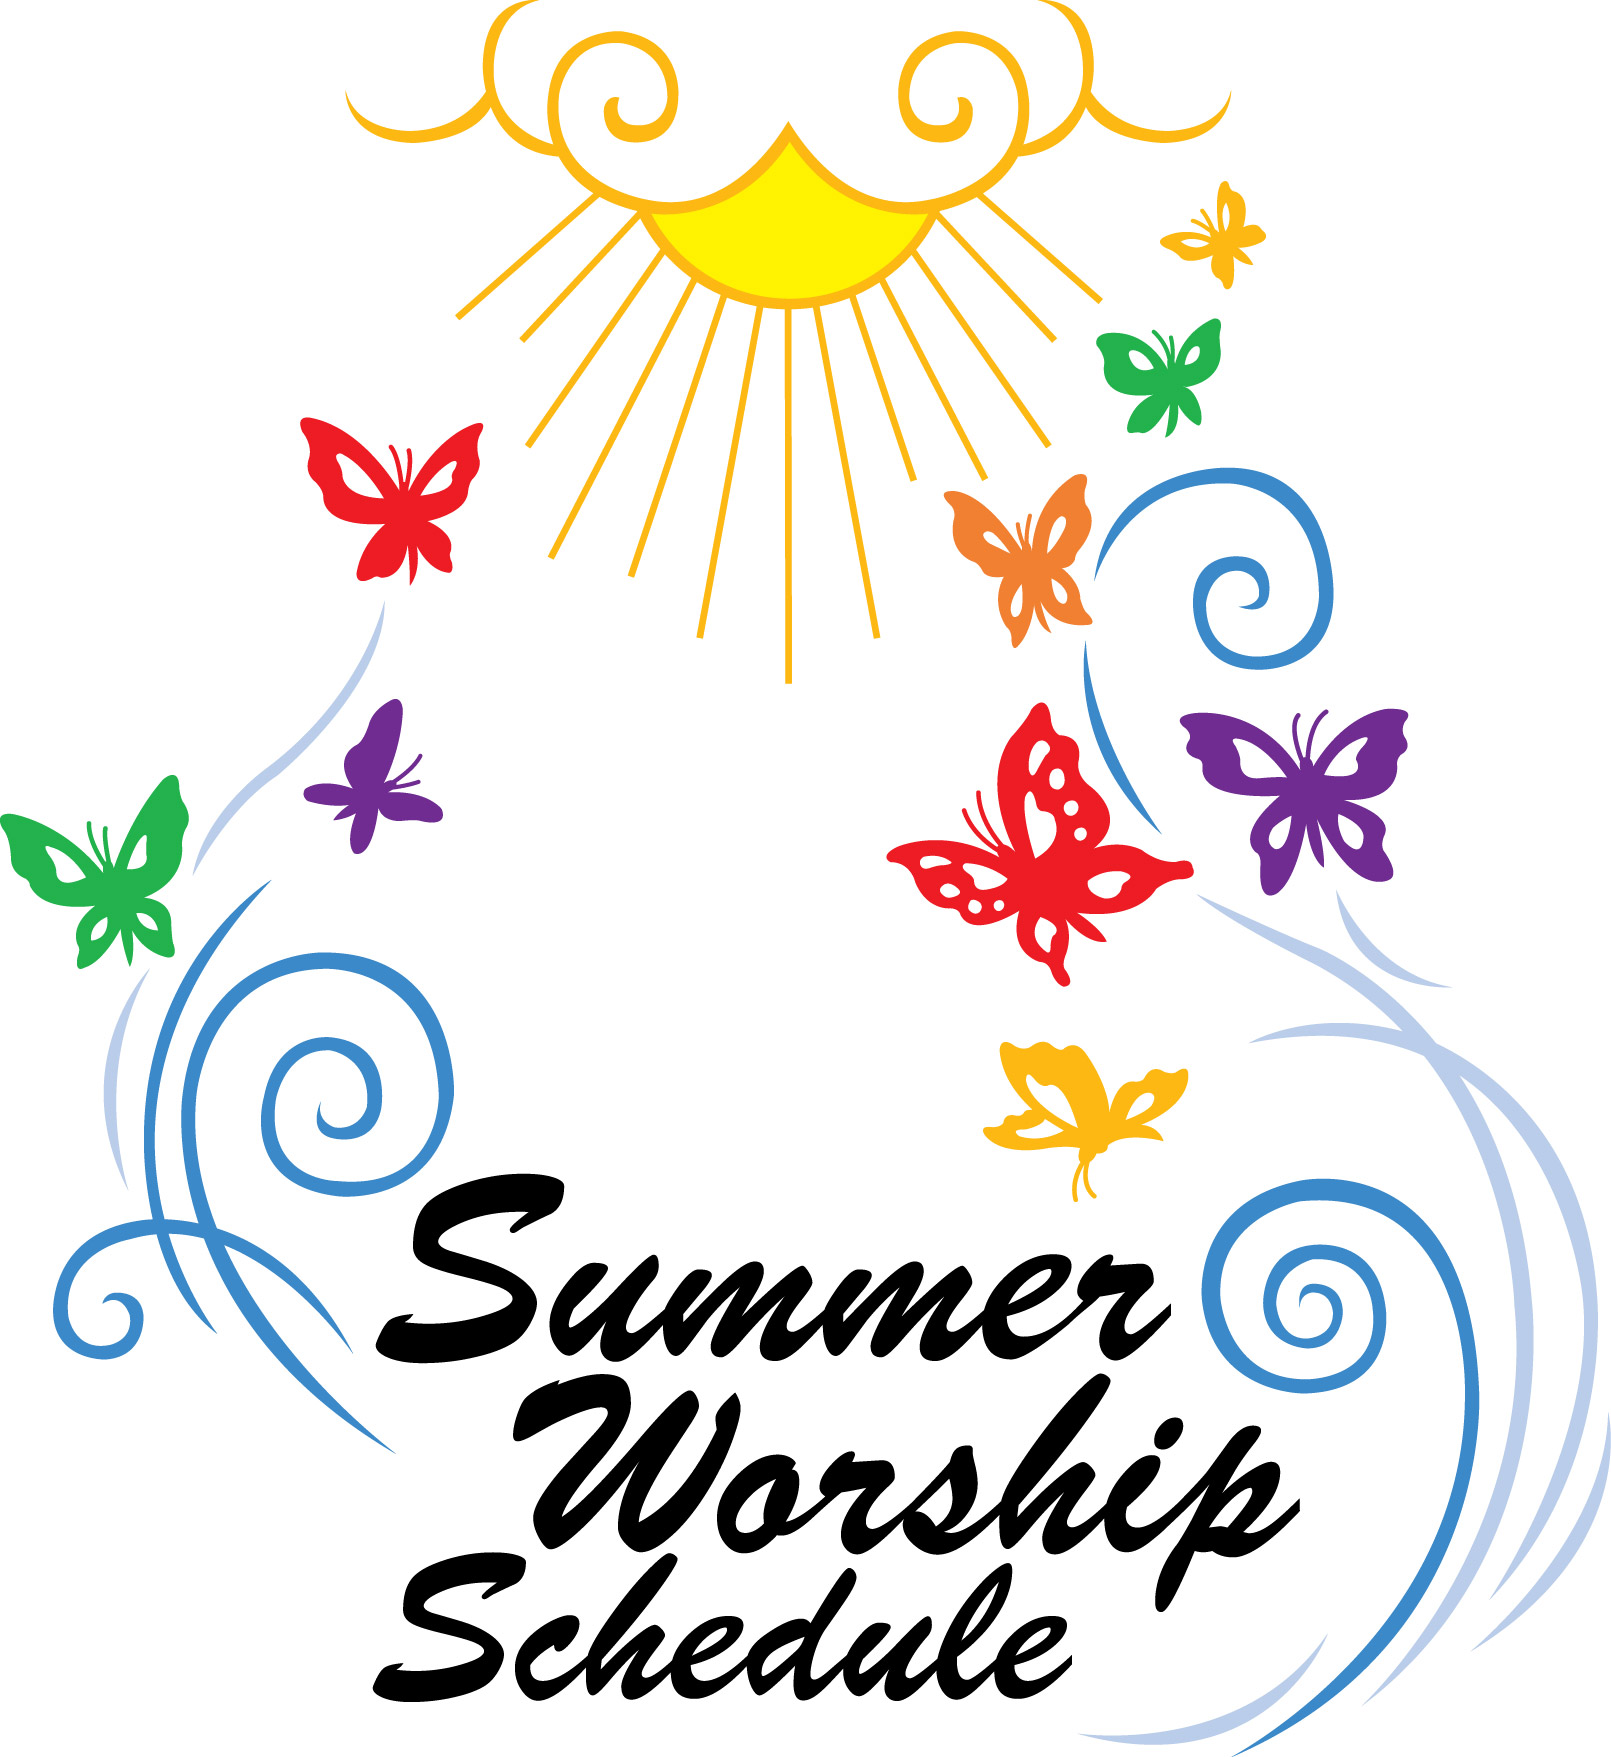 Summer worship clipart graphic library Summer worship clipart image #41932 graphic library